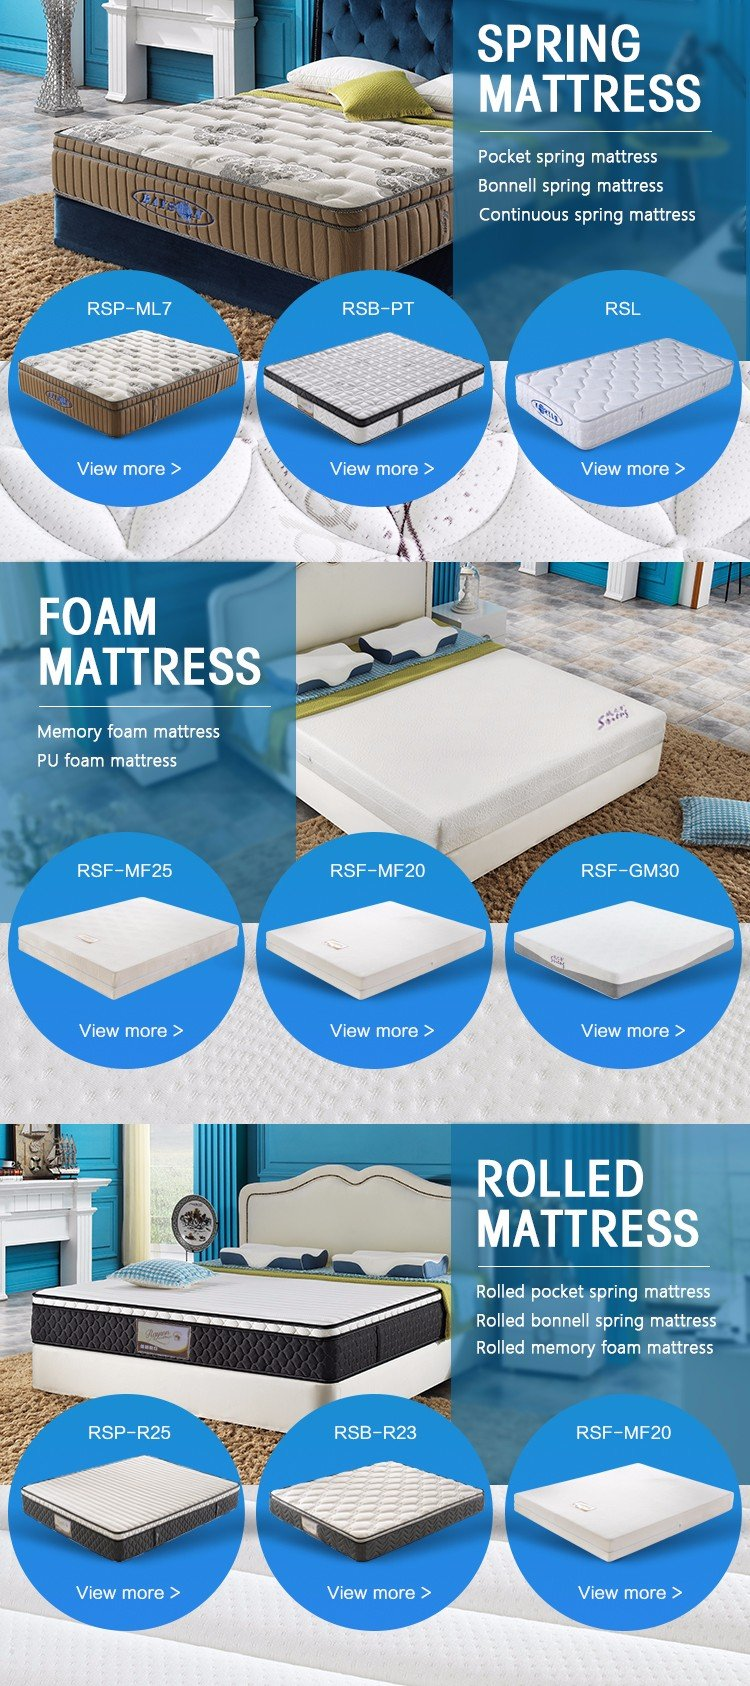 Latest w hotel mattress luxury manufacturers-10